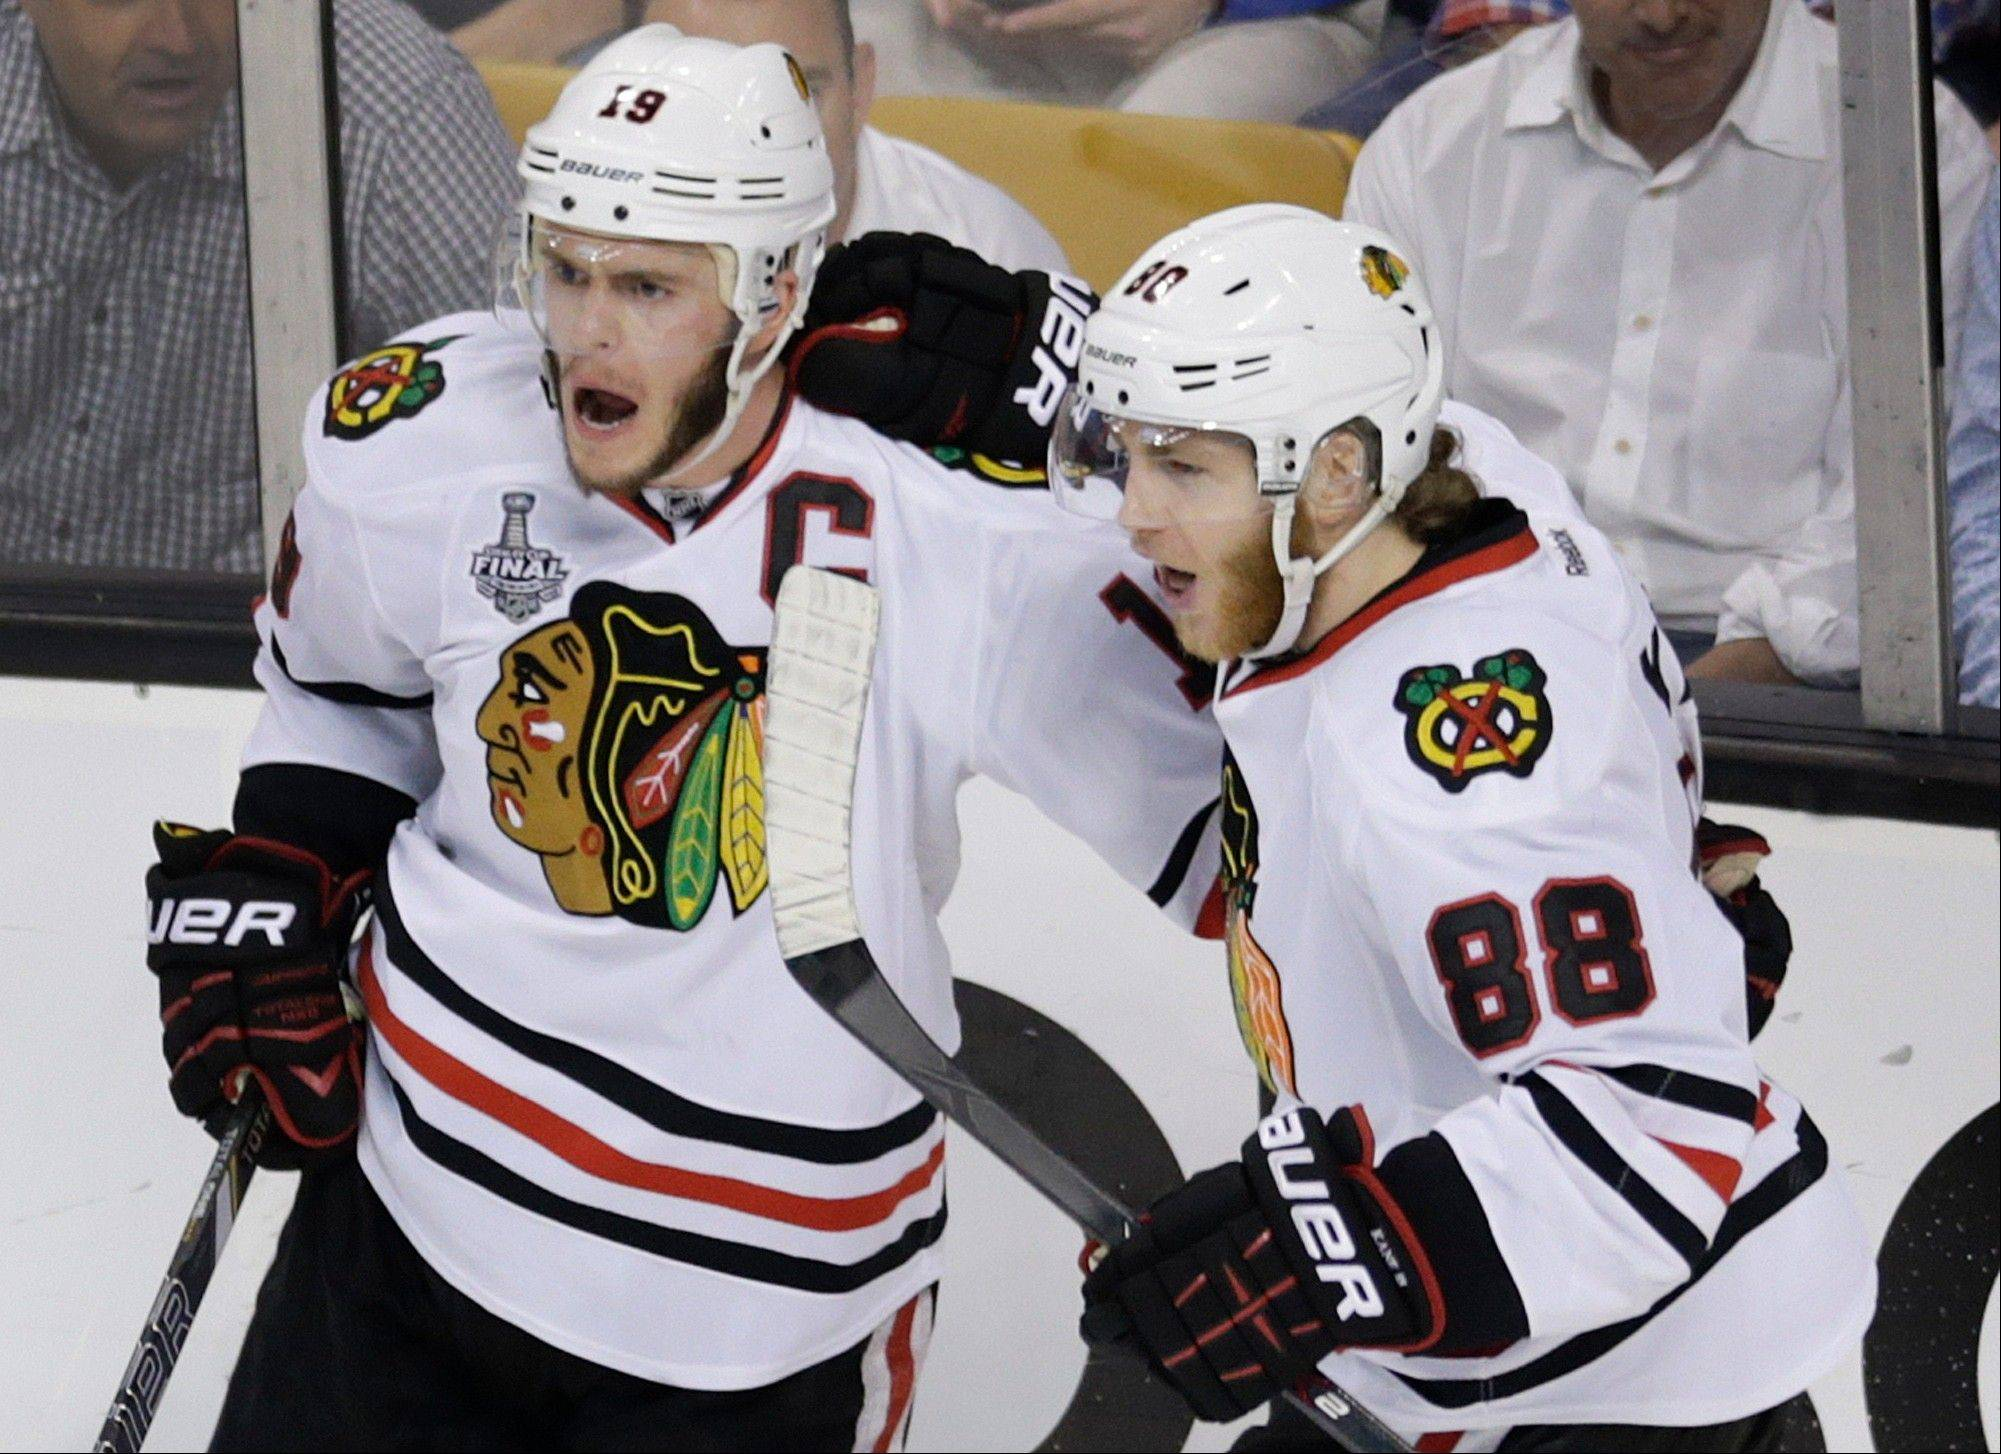 No way Toews would miss out on Game 6